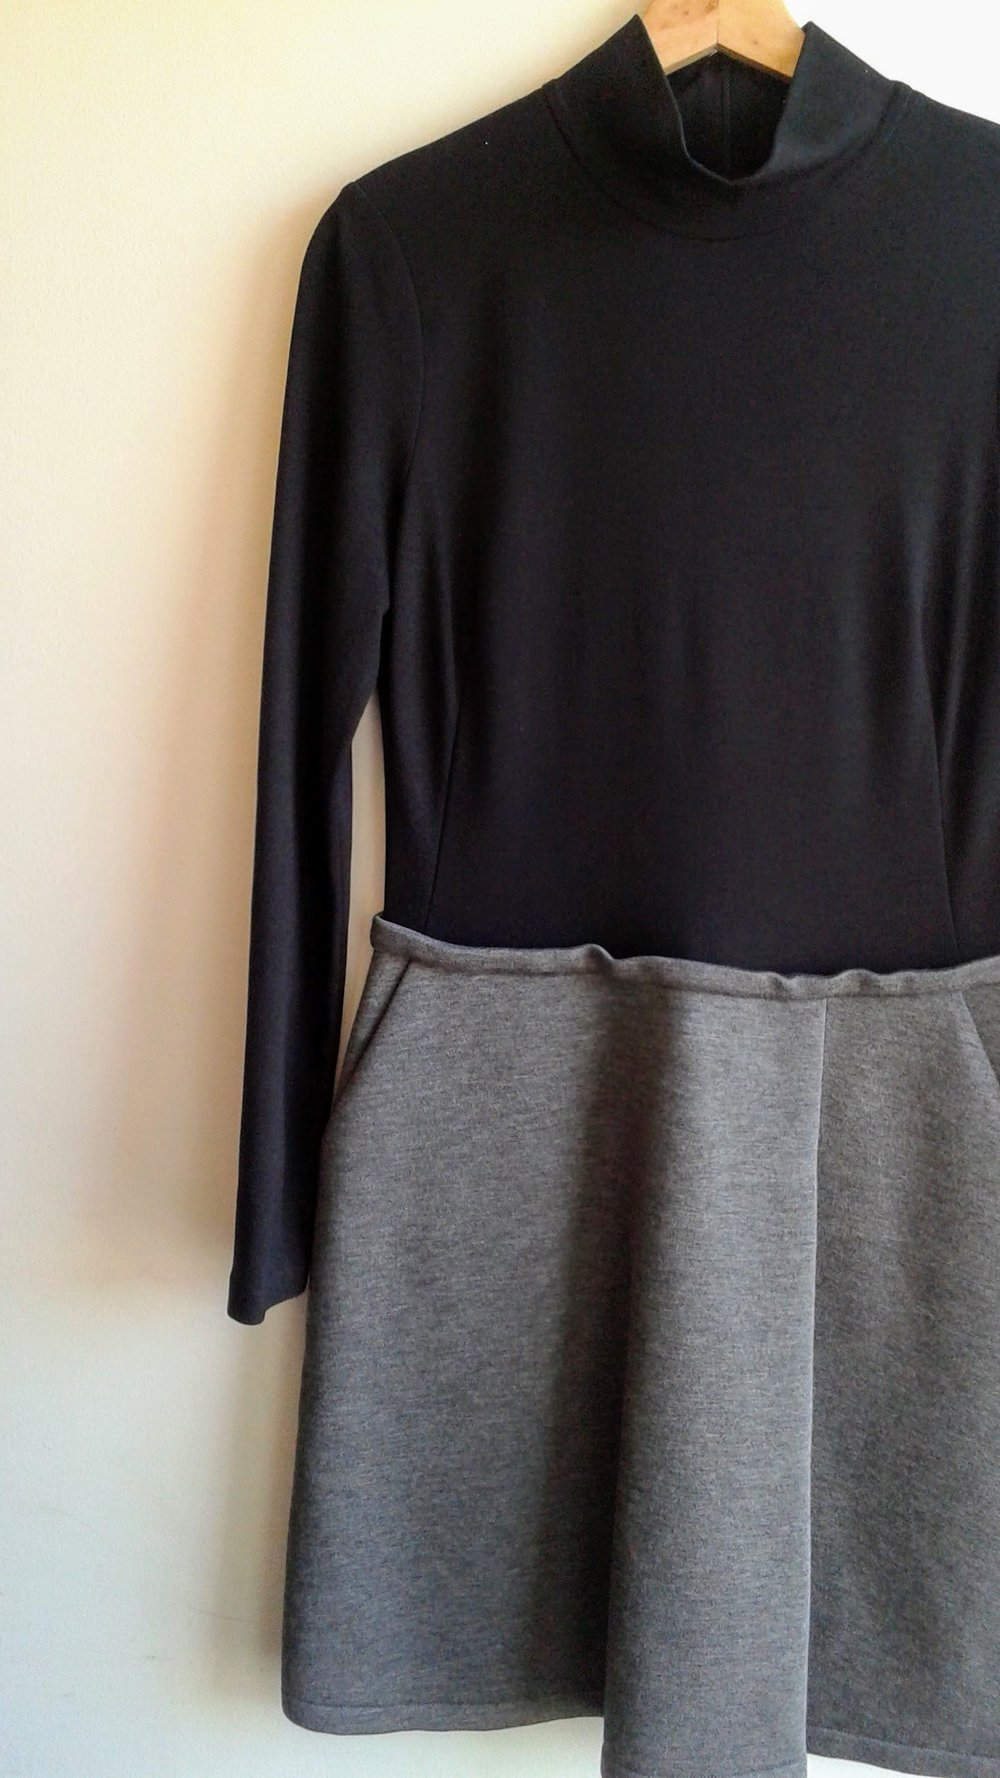 Jil Sander  dress; Size M, $48